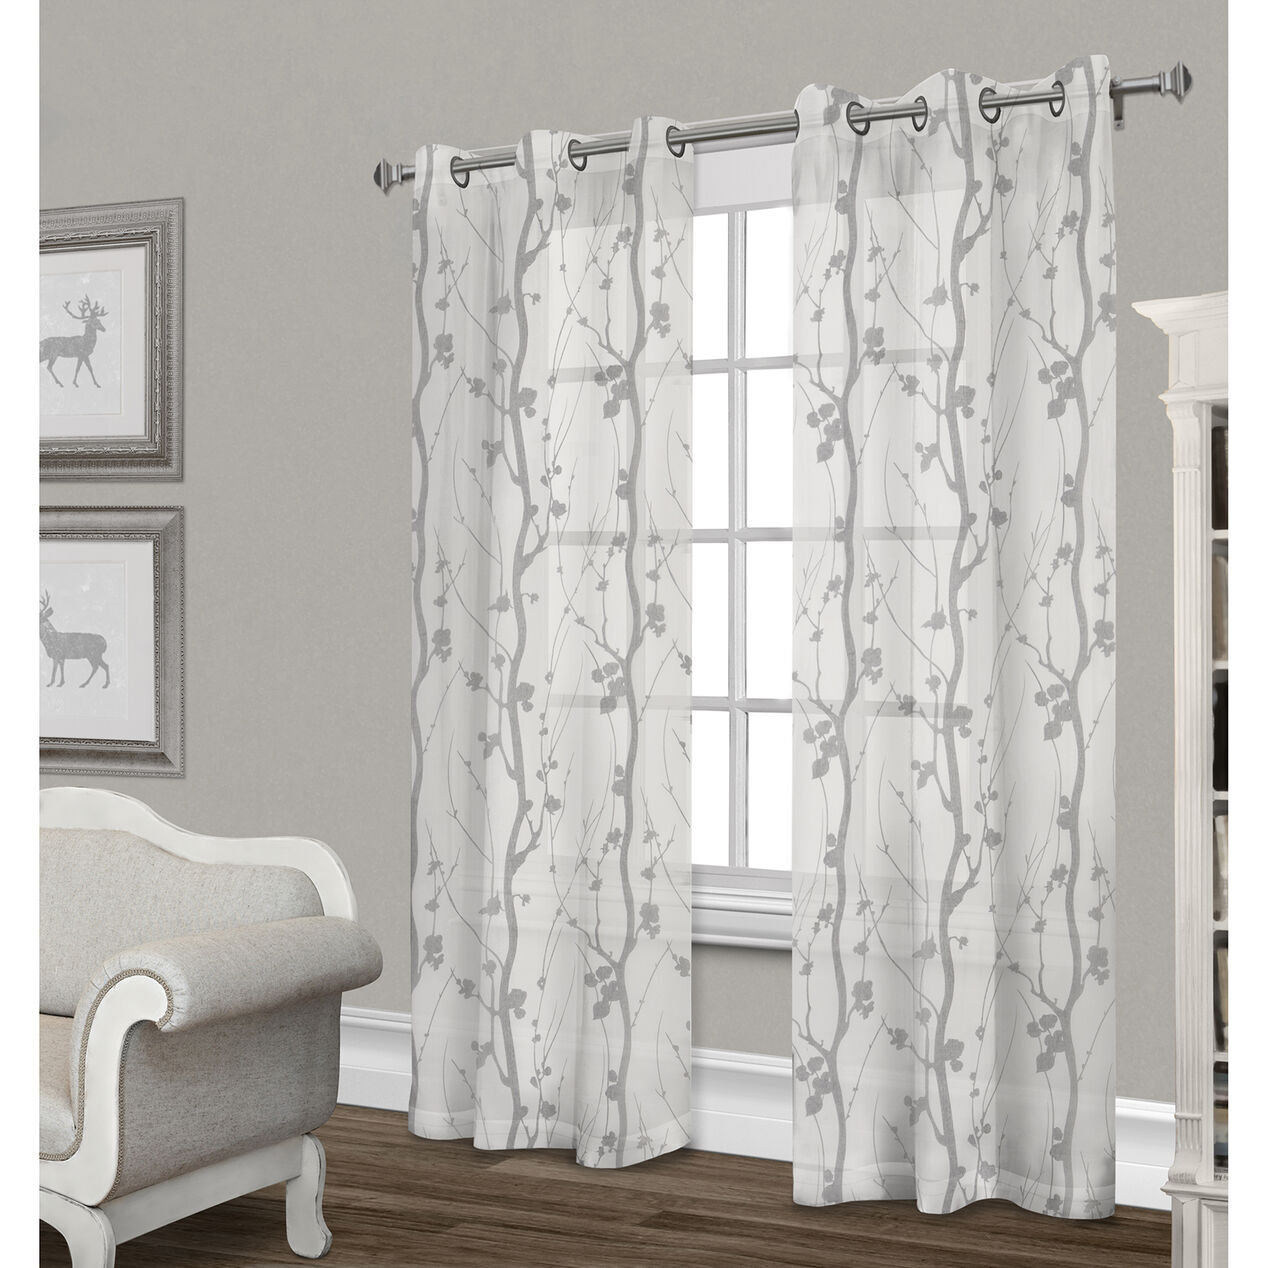 Corfu Sheer Curtain Panel Dove Gray 84 In At Home